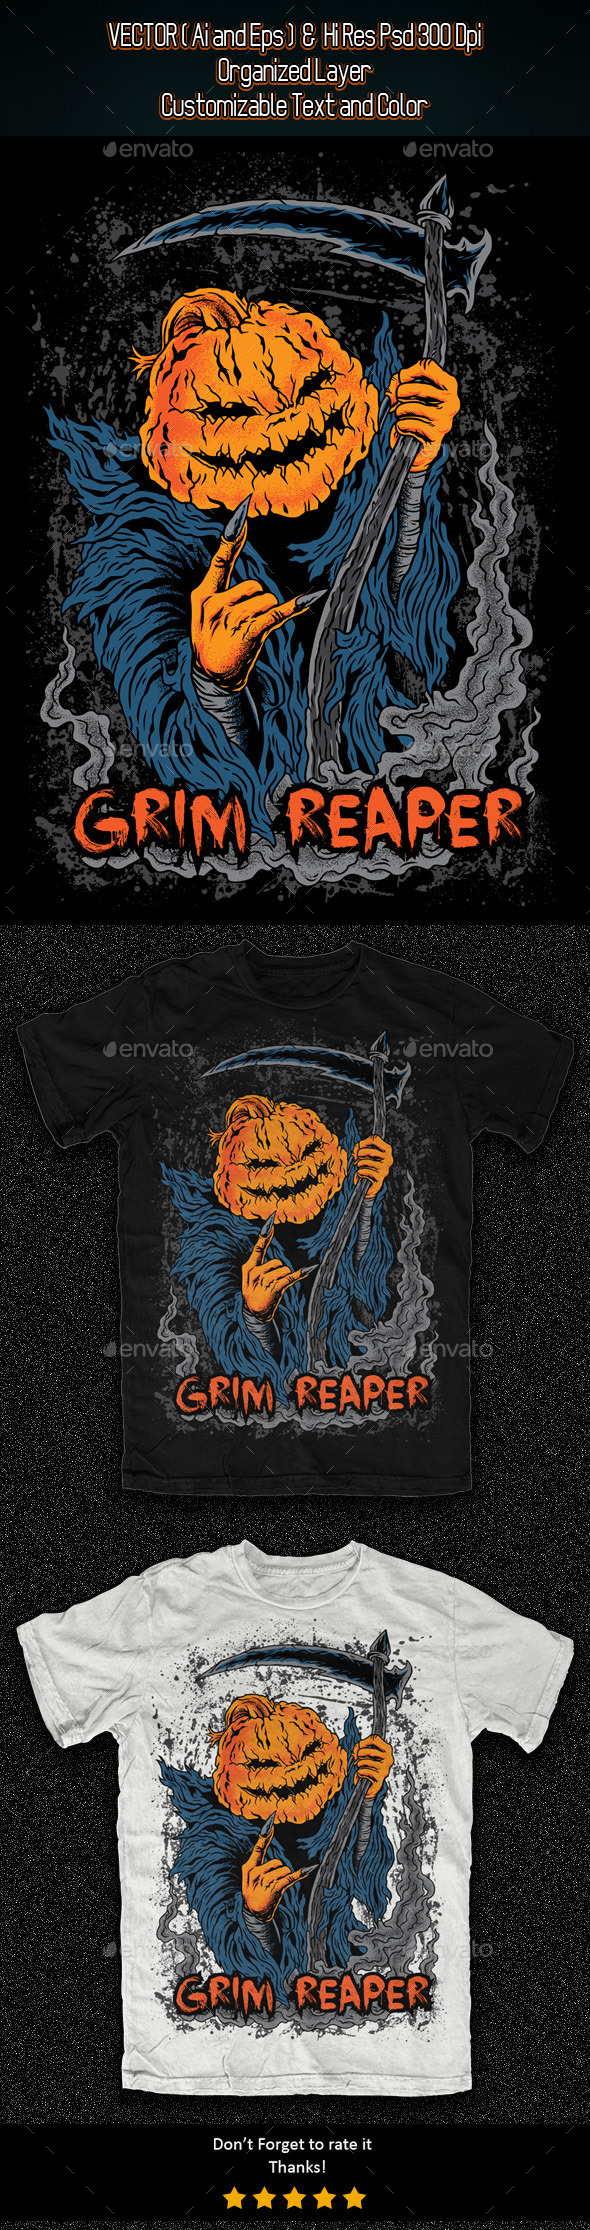 Grim Reaper Illustration - Grunge Designs